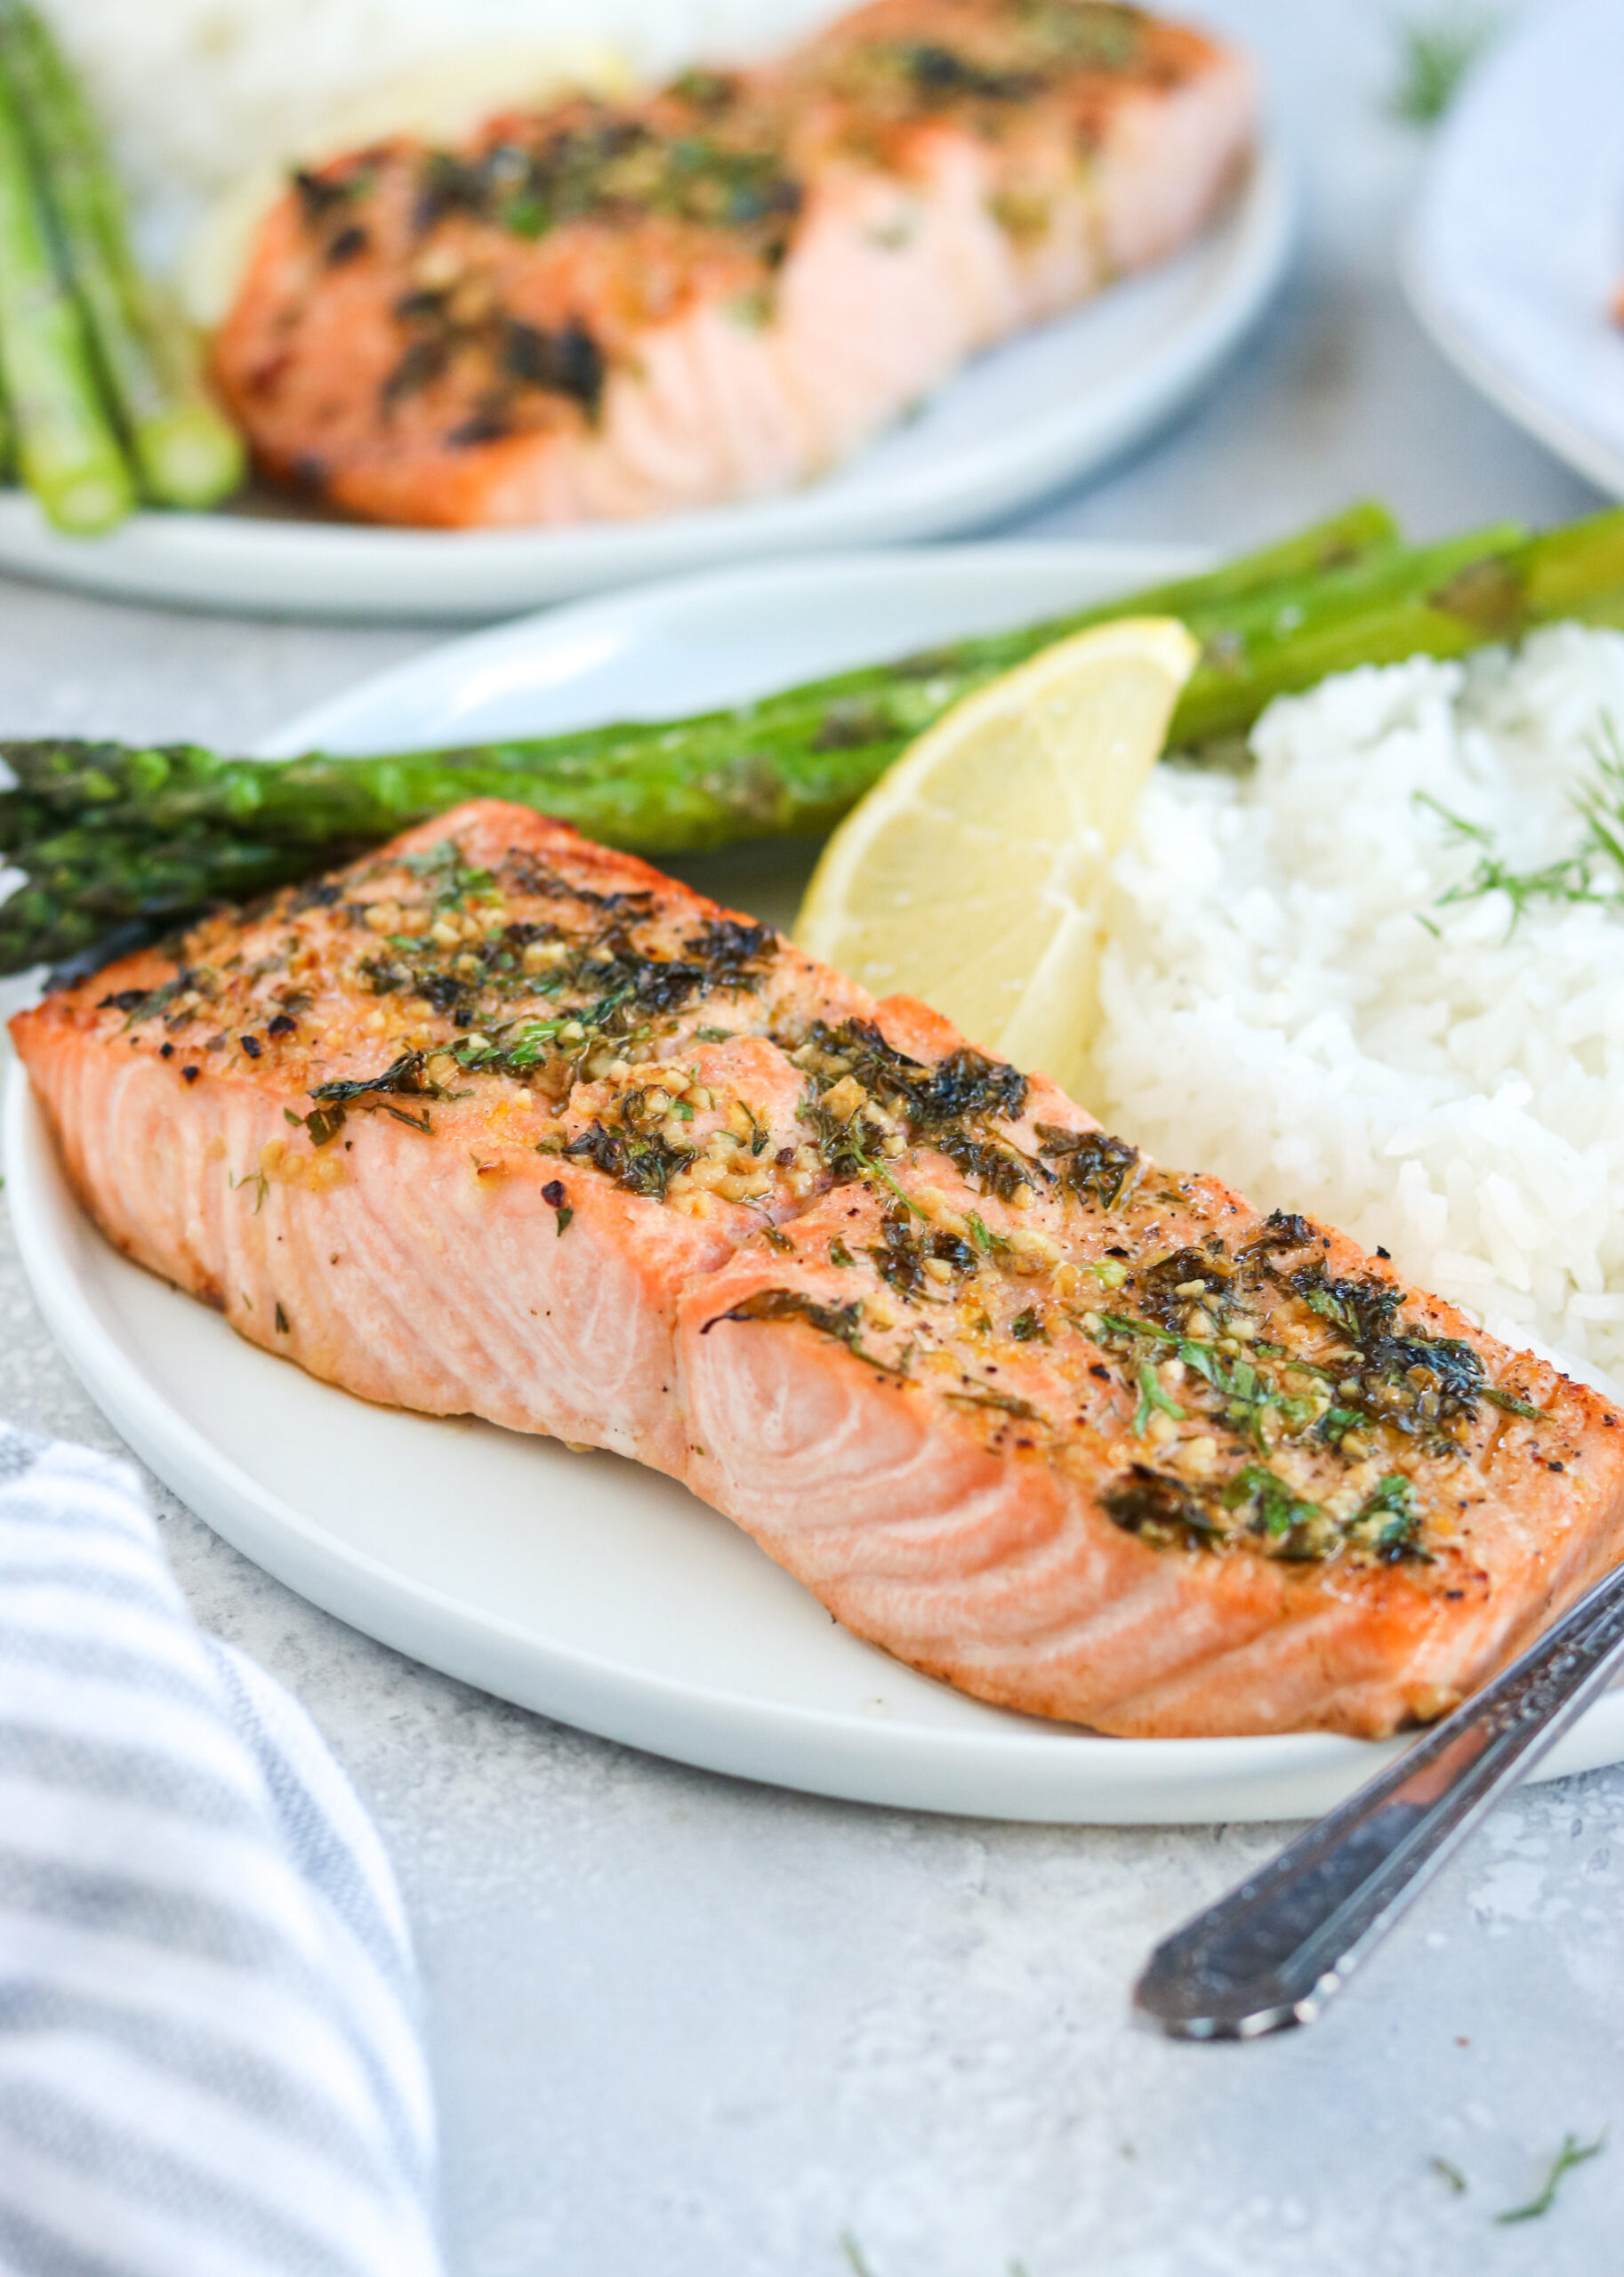 side view of garlic herb baked salmon on a white plate with asparagus, white rice, and a lemon wedge, next to a silver fork with a white background